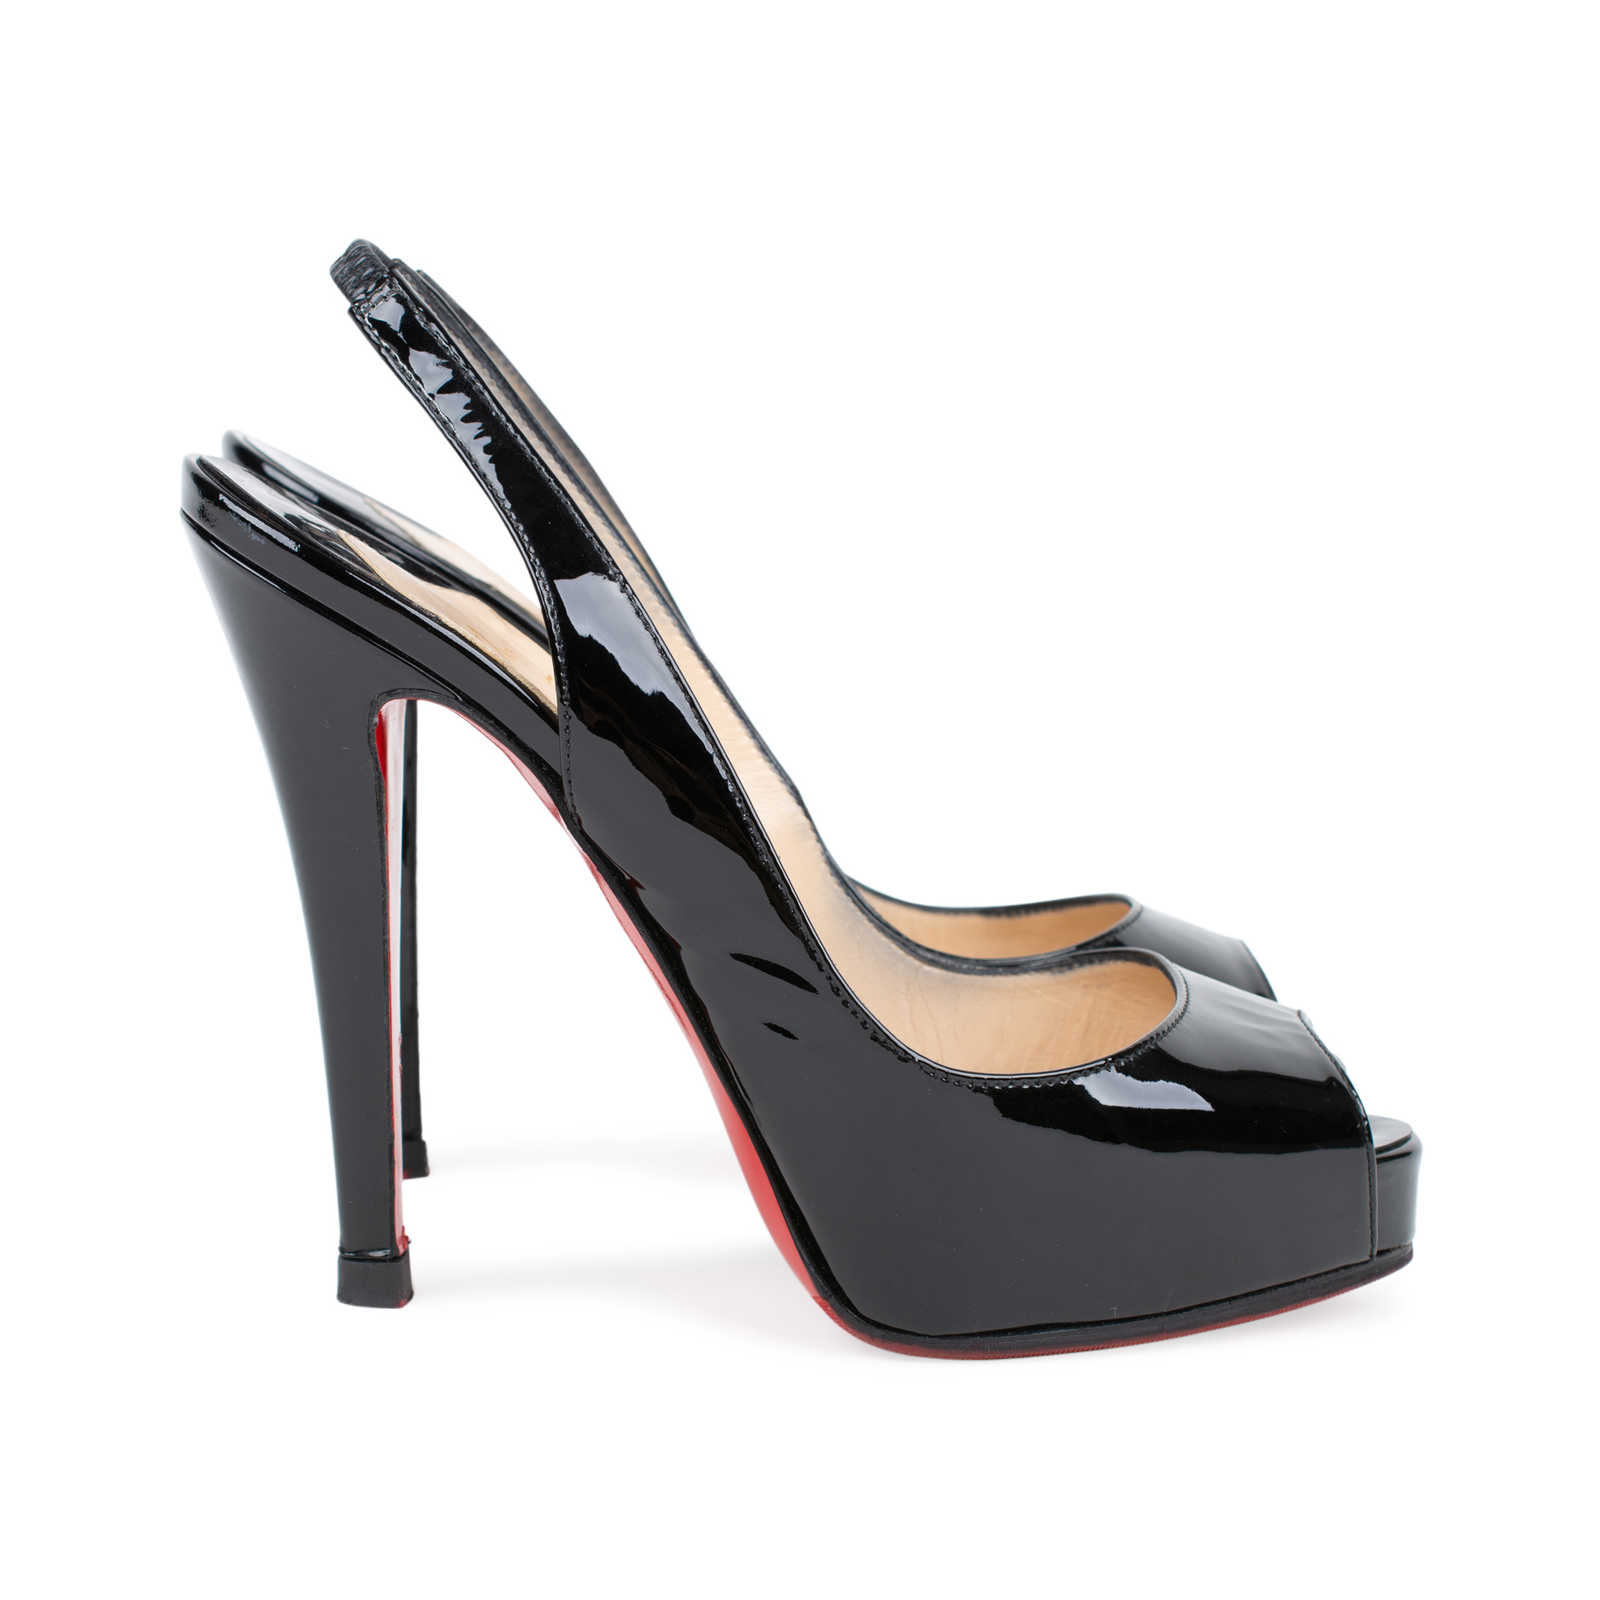 c0aaf5dc815c ... Authentic Second Hand Christian Louboutin No Prive 120mm Patent  Slingbacks (PSS-225-00035 ...